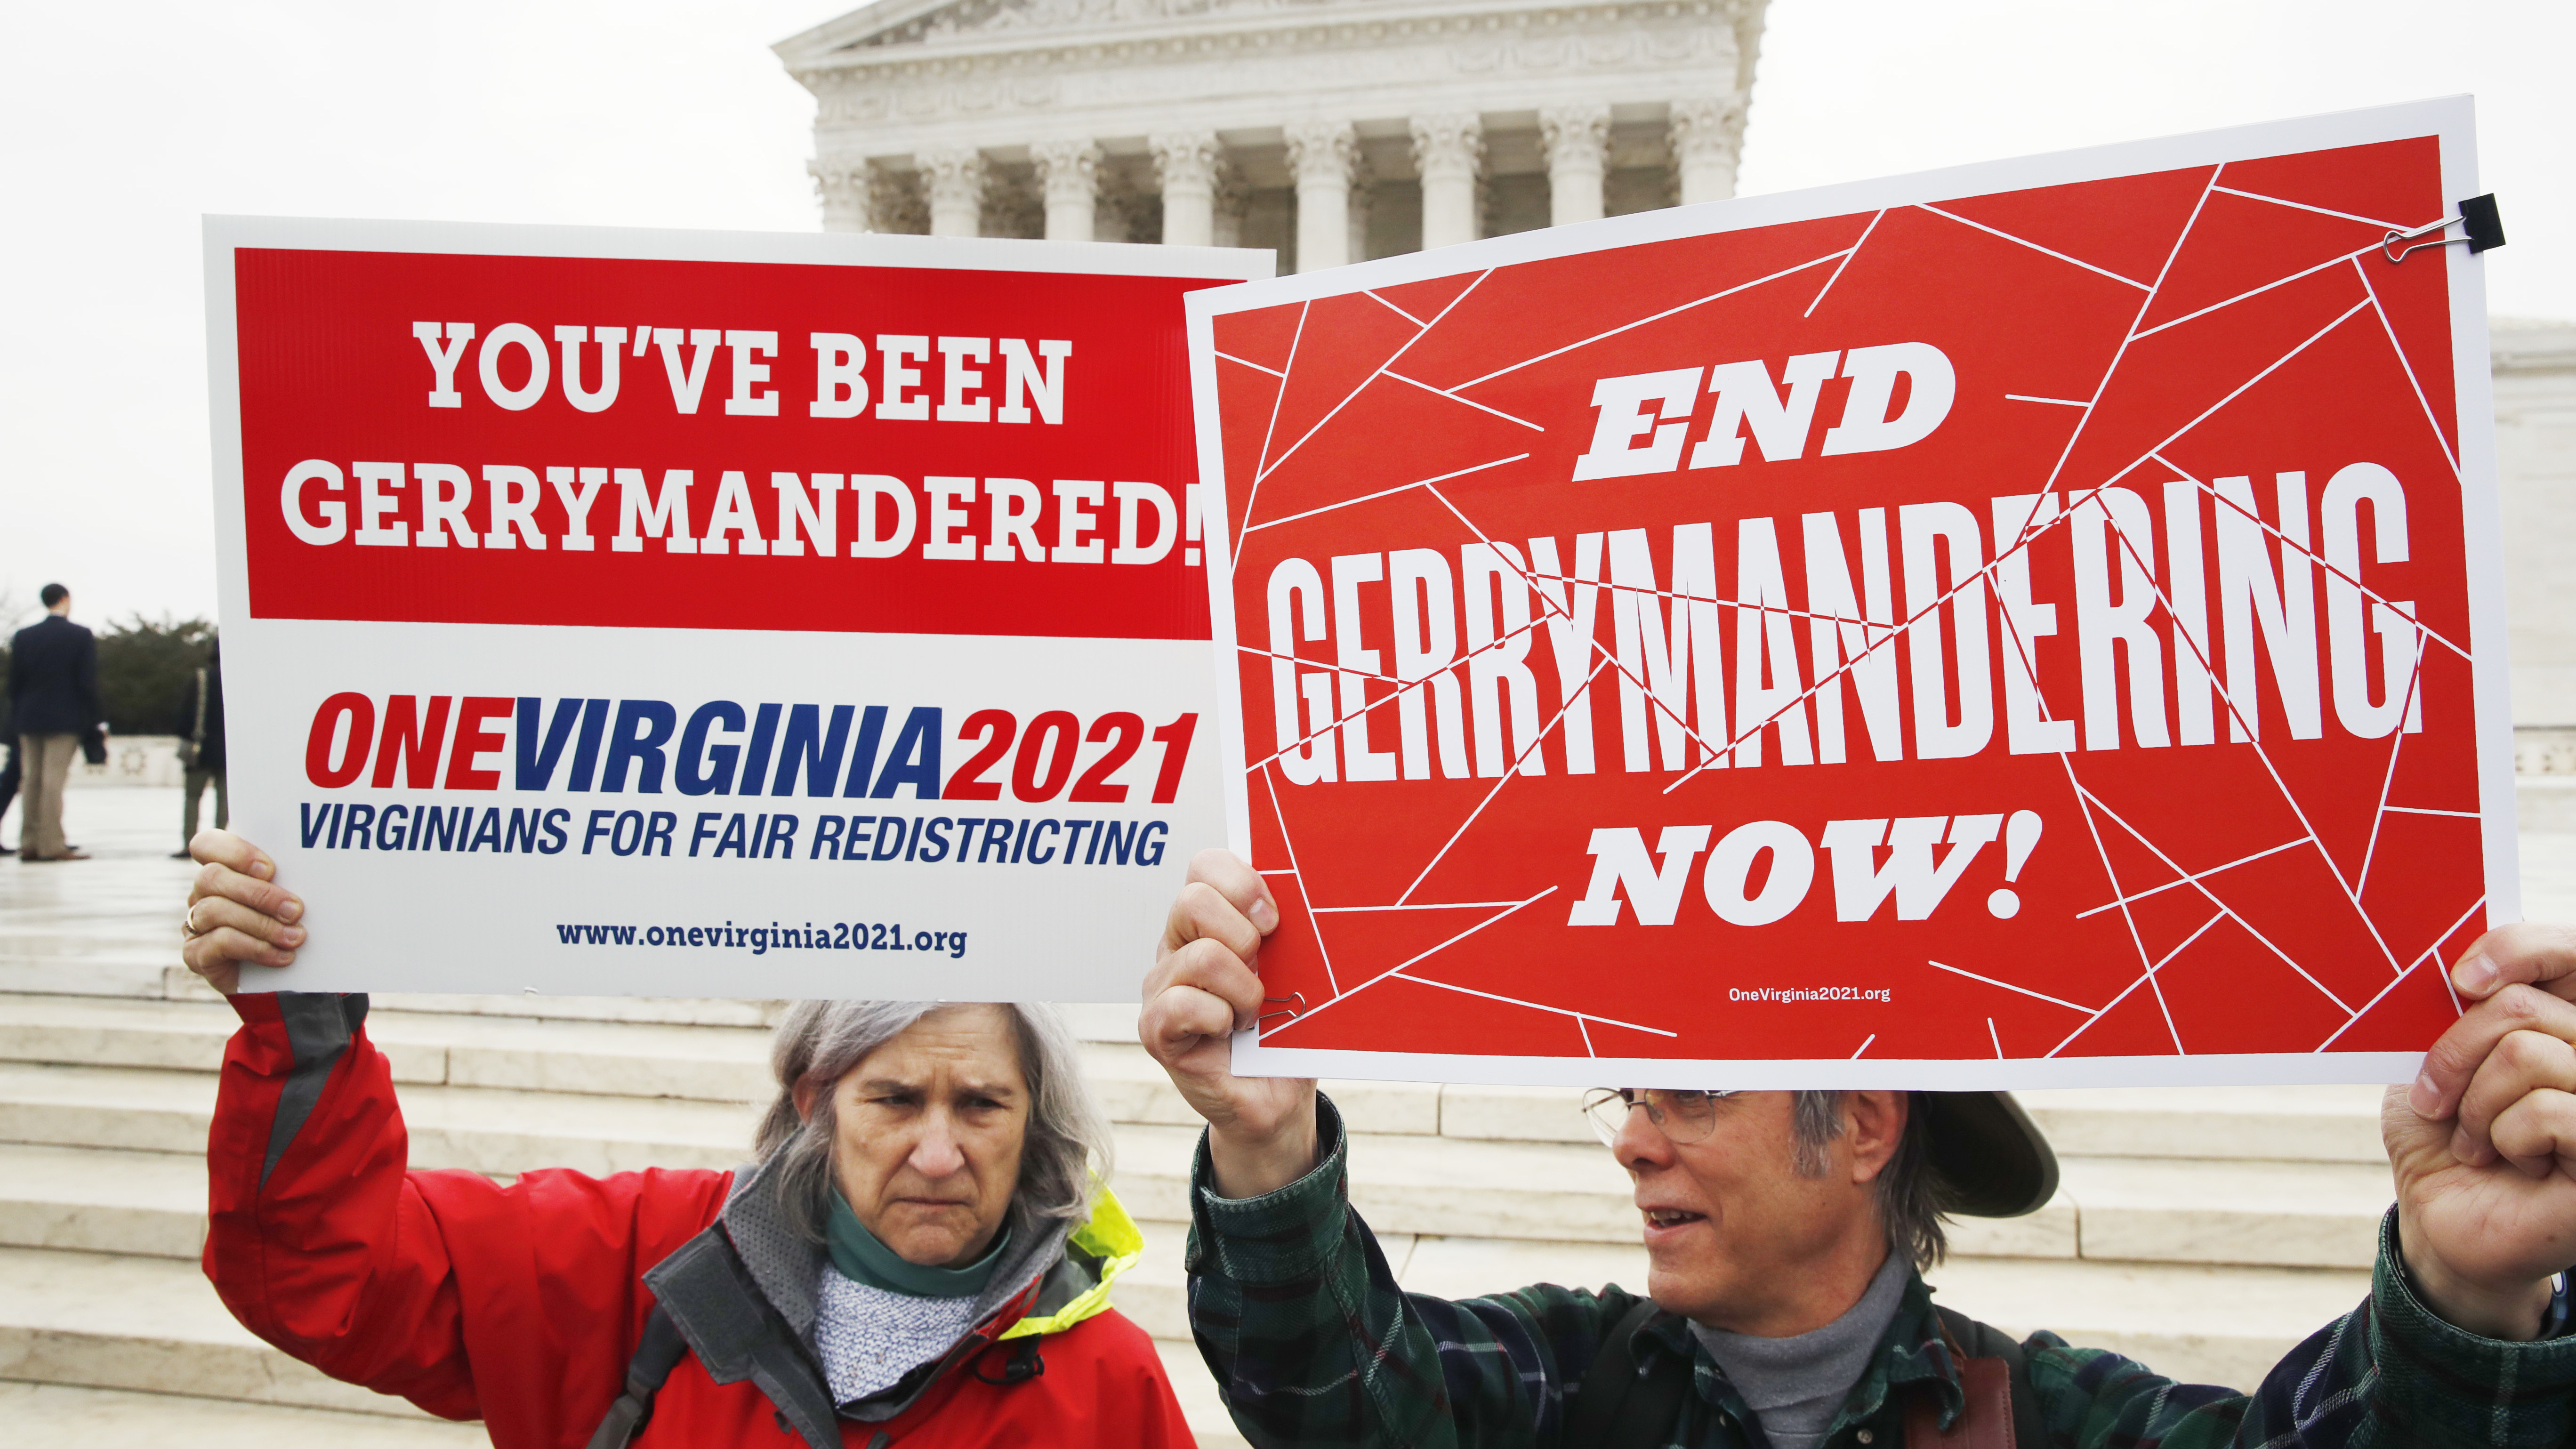 Redistricting Guru's Hard Drives Could Mean Legal, Political Woes For GOP